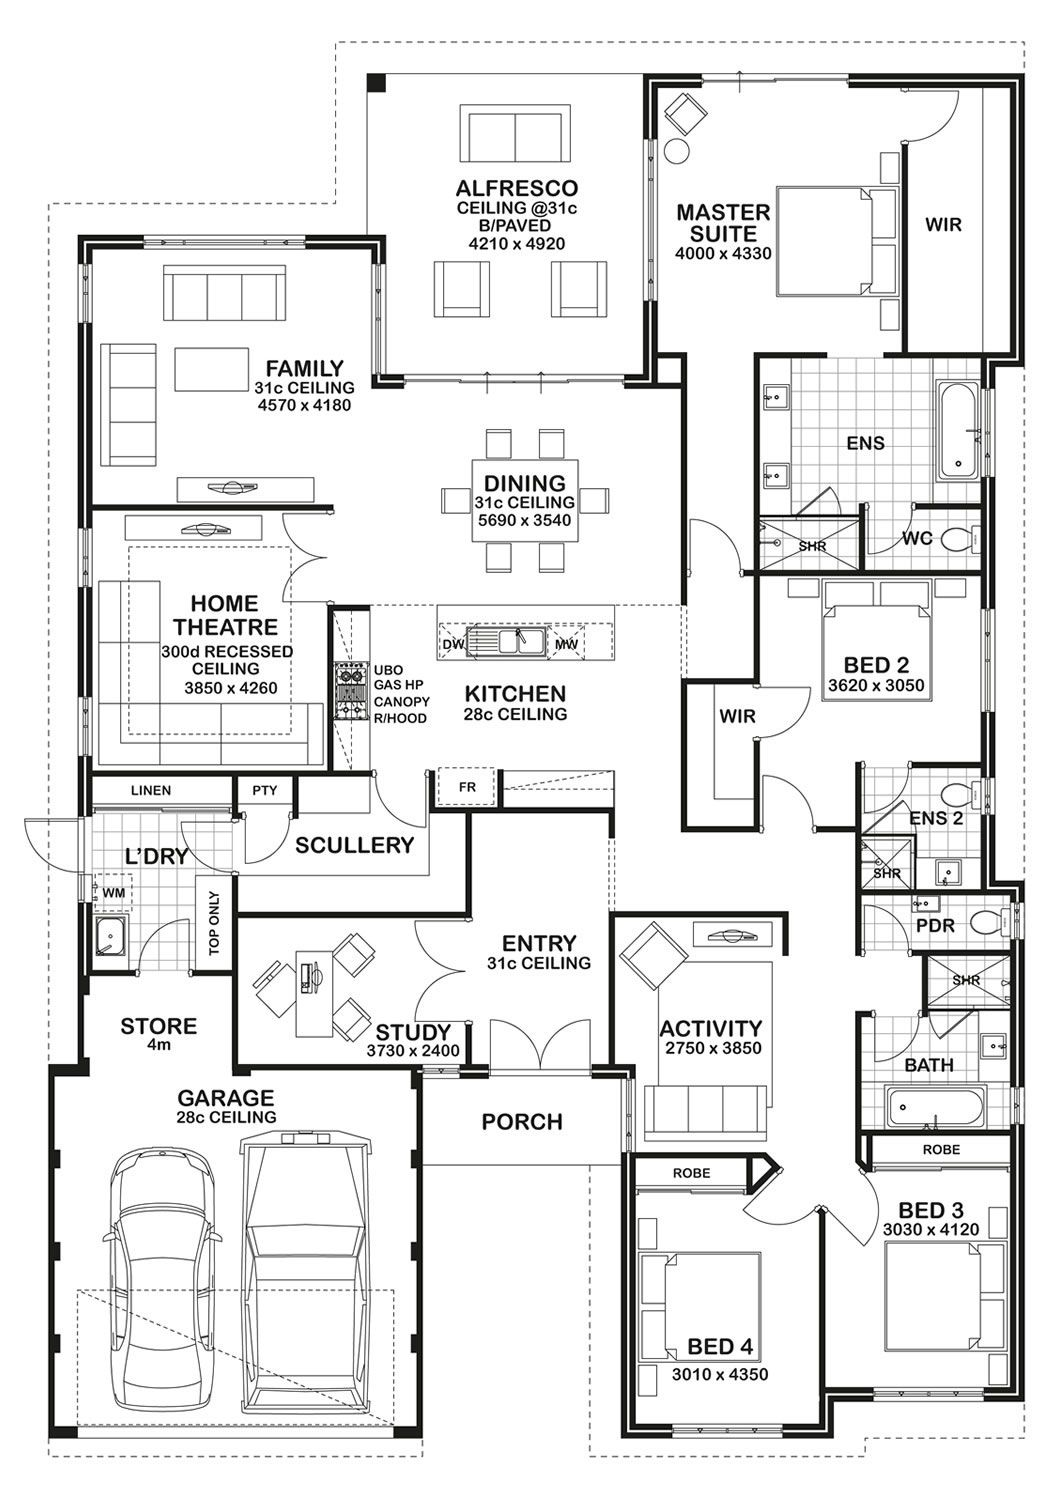 Home Designs Perth 4 Bedroom House Plans House Blueprints Bedroom House Plans